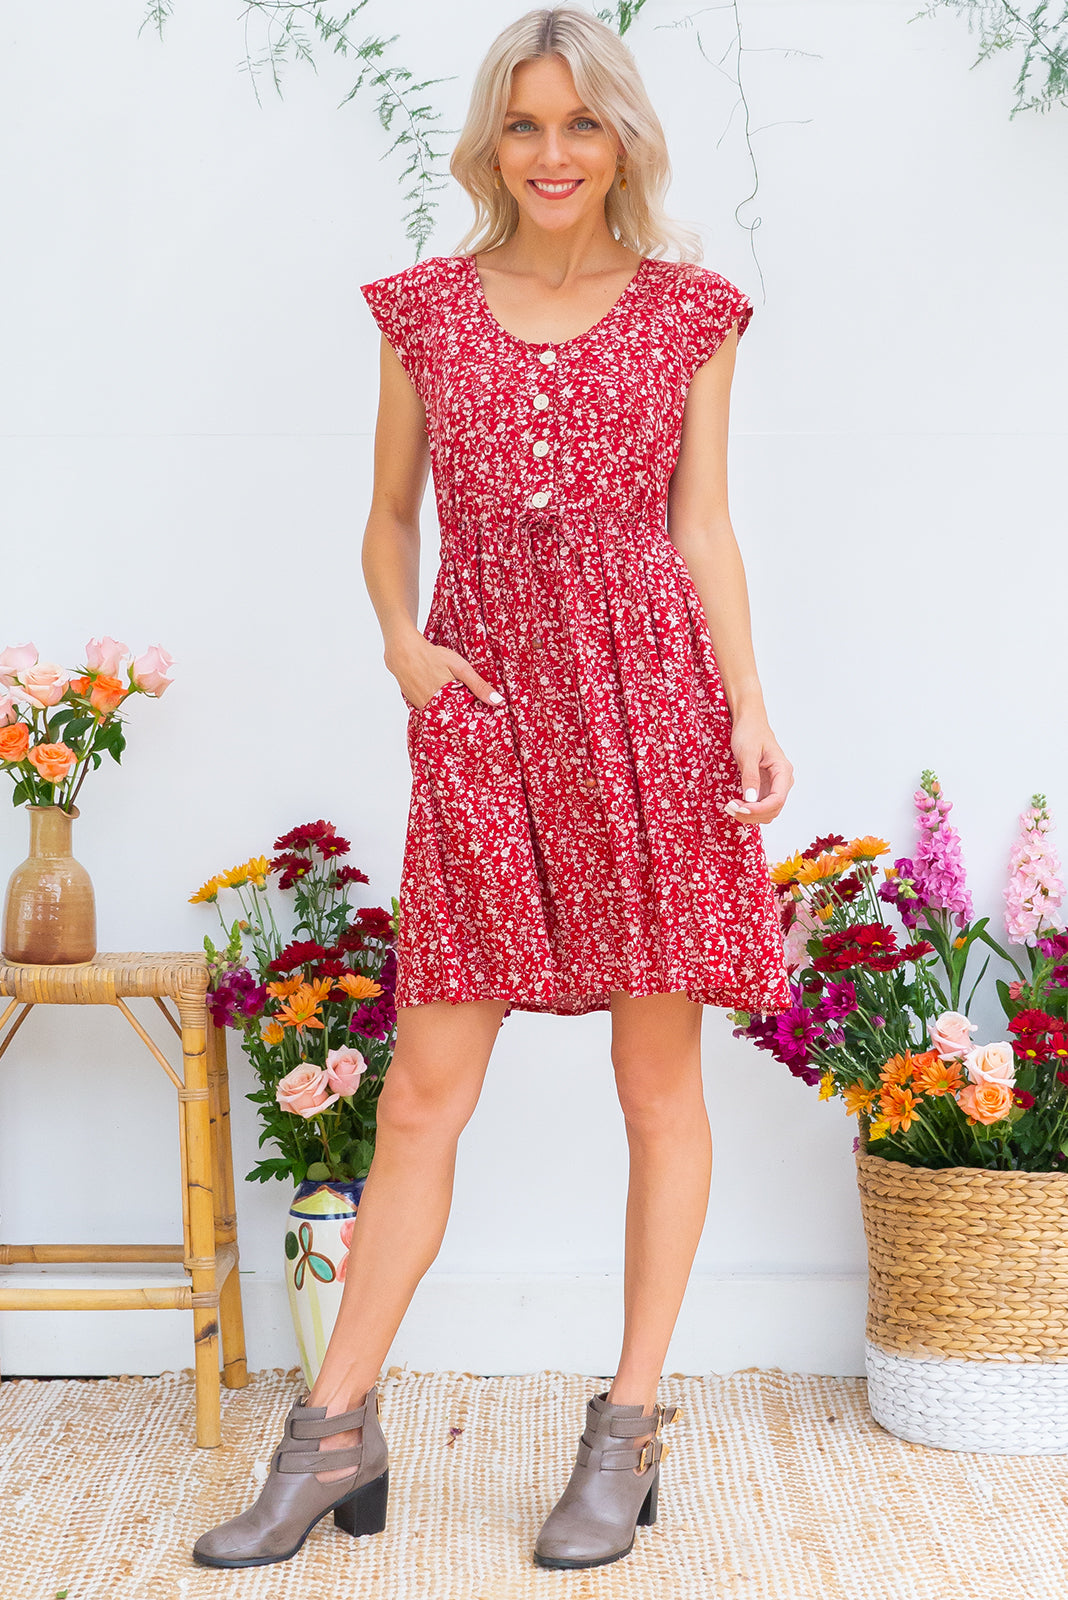 Juniper Red Earth Dress with a button front, cap sleeves, side pockets and a full skirt in a rust red floral print on a 100% woven rayon chic and effortless style